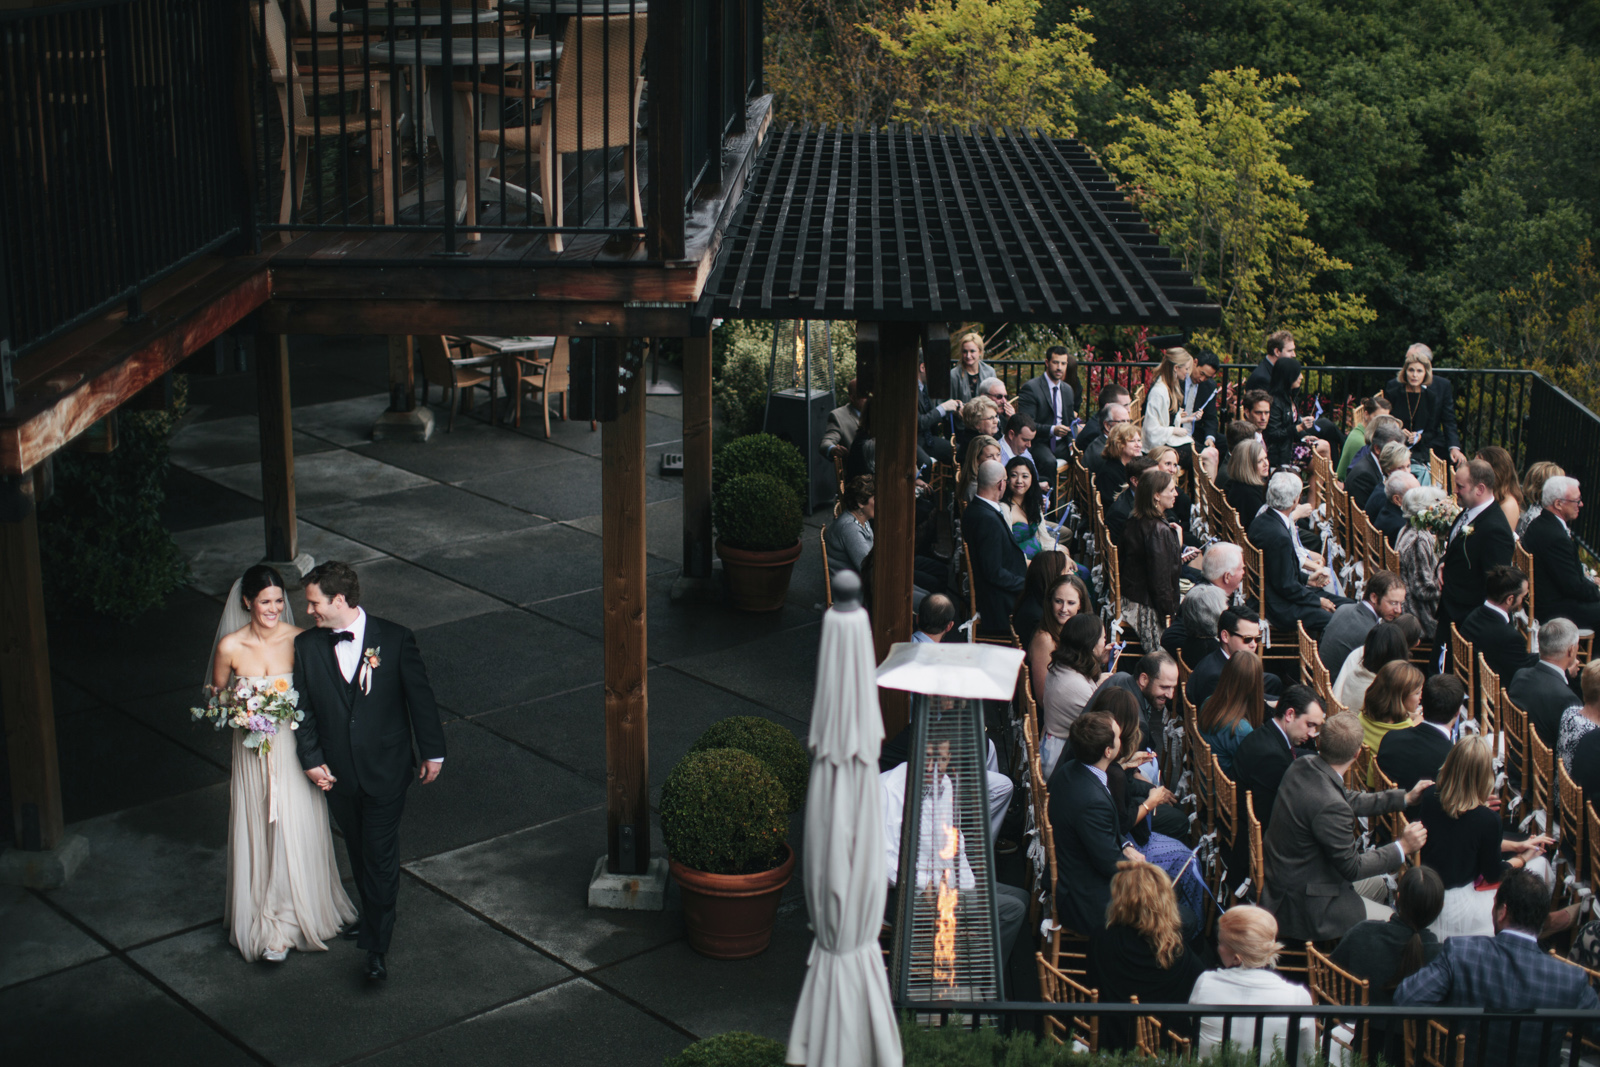 San Francisco - Napa Valley Wedding Photographer - For the Love of It-014.jpg